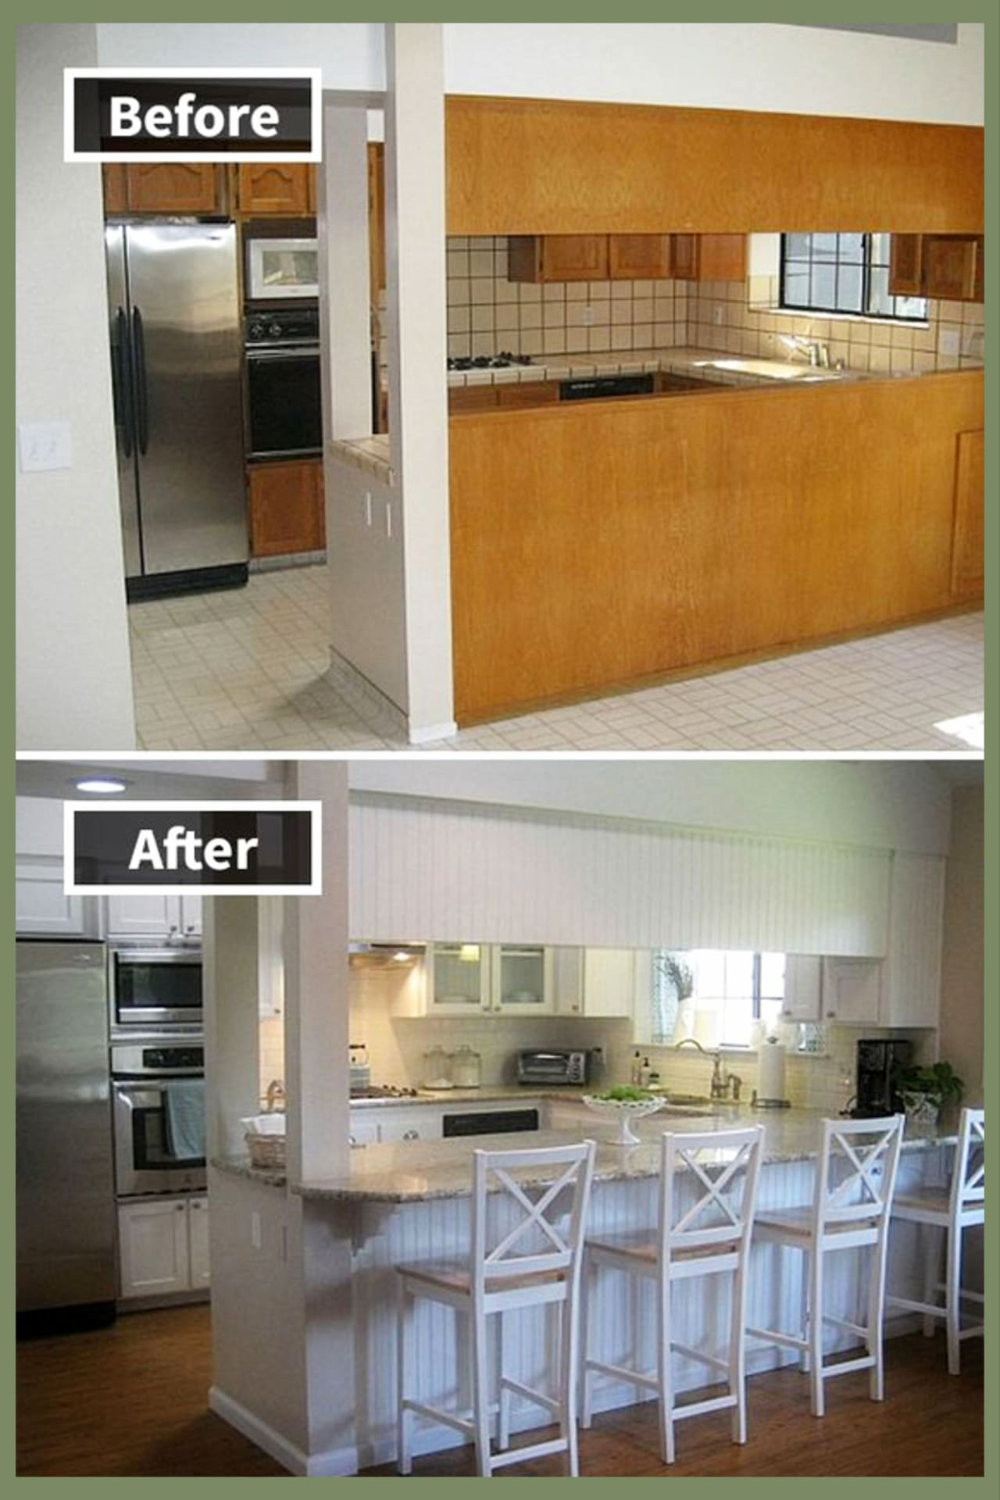 Small Kitchen Ideas On A Budget Before After Remodel Pictures Of Tiny Kitchens Clever Diy Ideas Kitchen Redesign Small Kitchen Ideas On A Budget Kitchen Remodel Ideas On A Budget